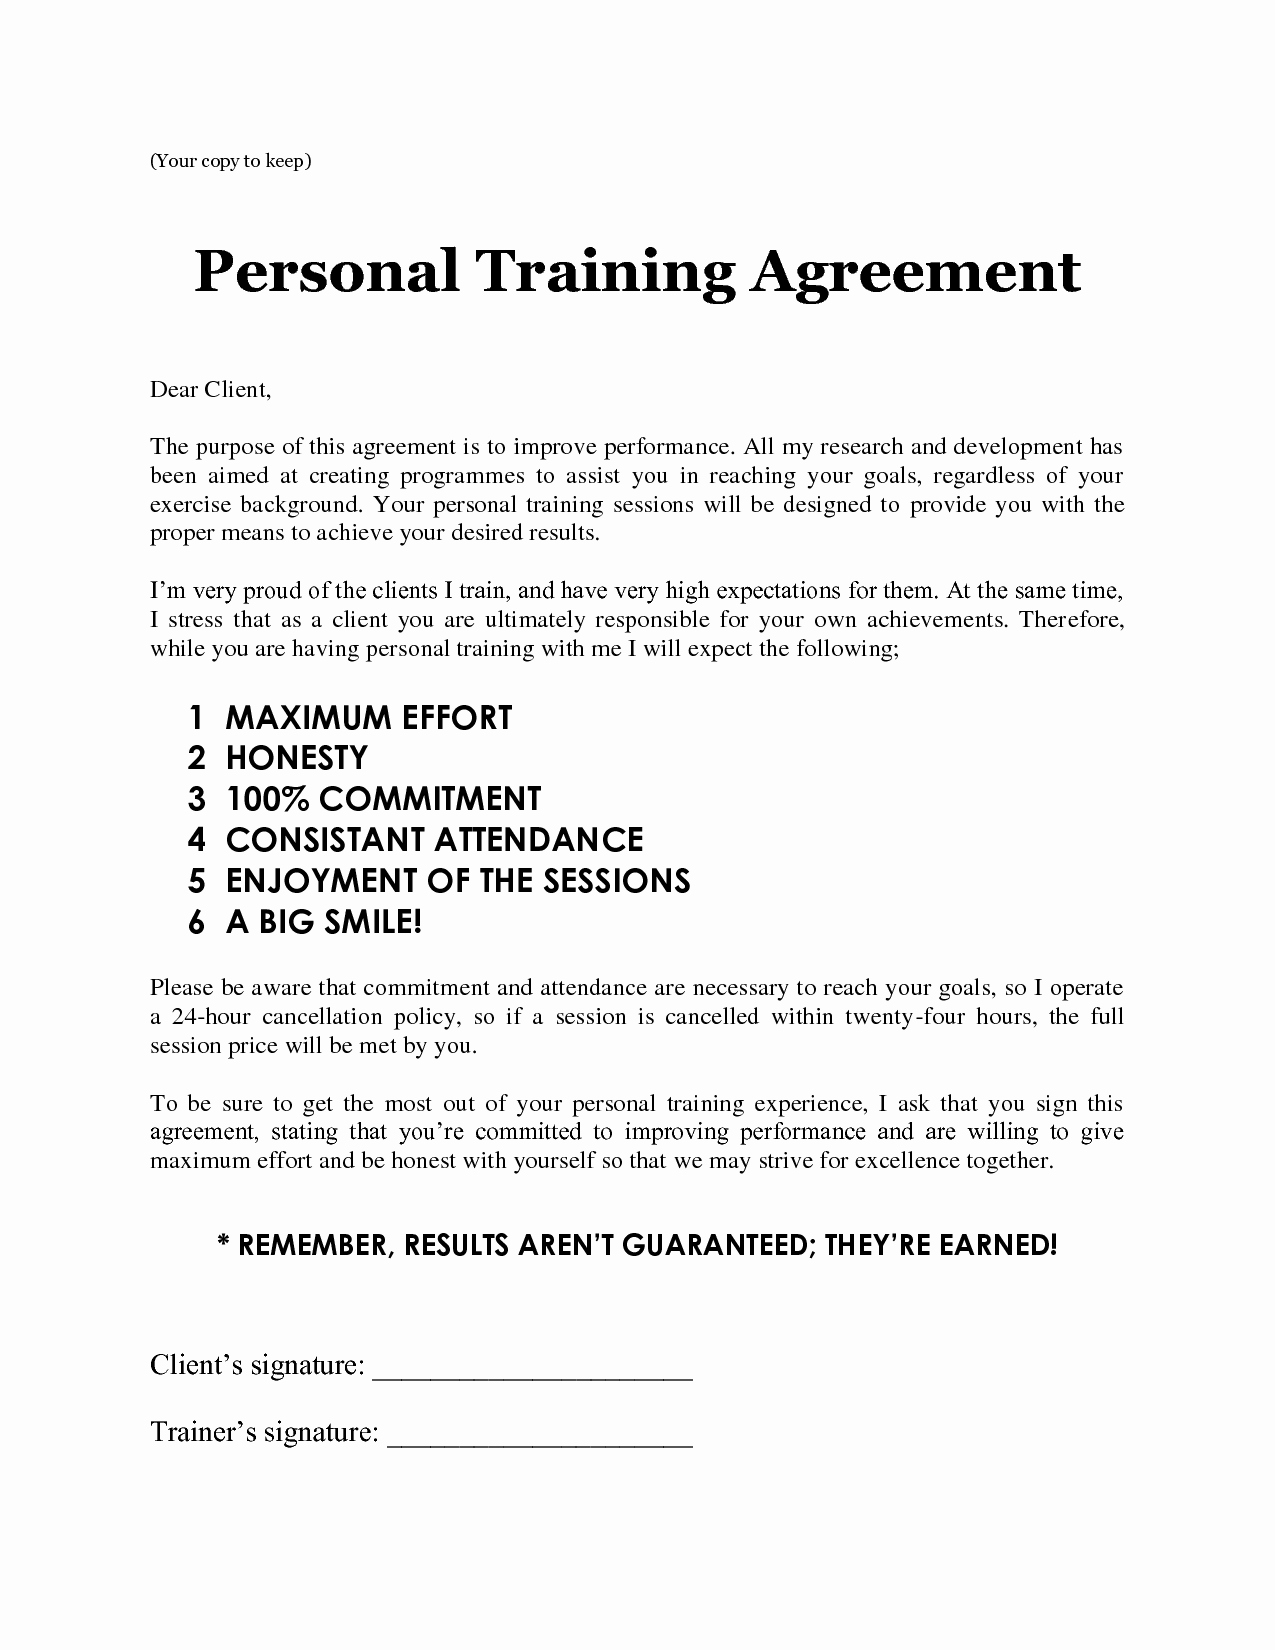 Personal Training Agreement Template Luxury Personal Training Contract Free Printable Documents